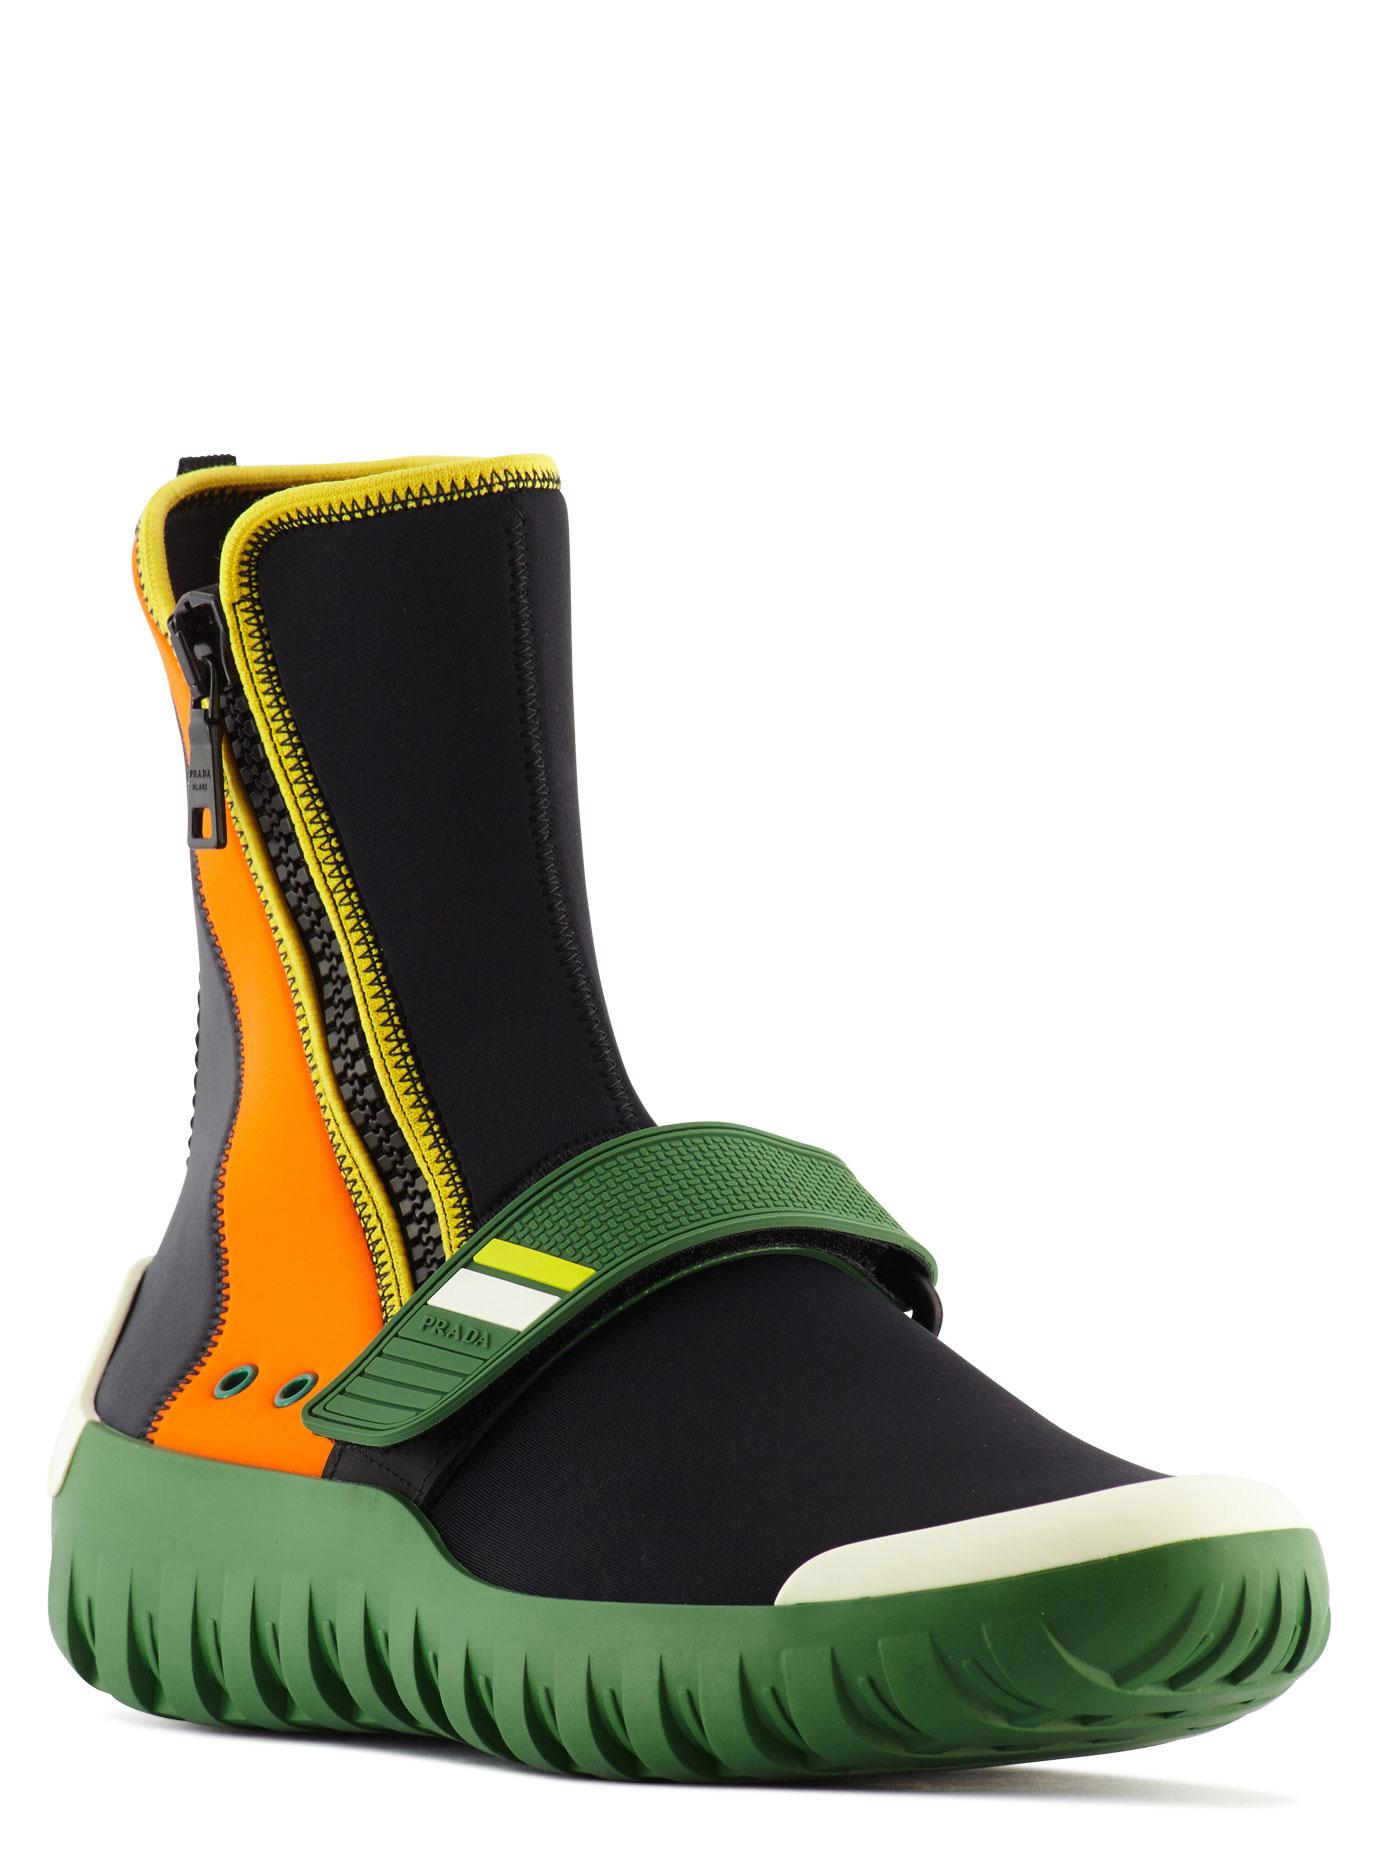 Prada Two Tone Neoprene Ankle Boots For Men Lyst